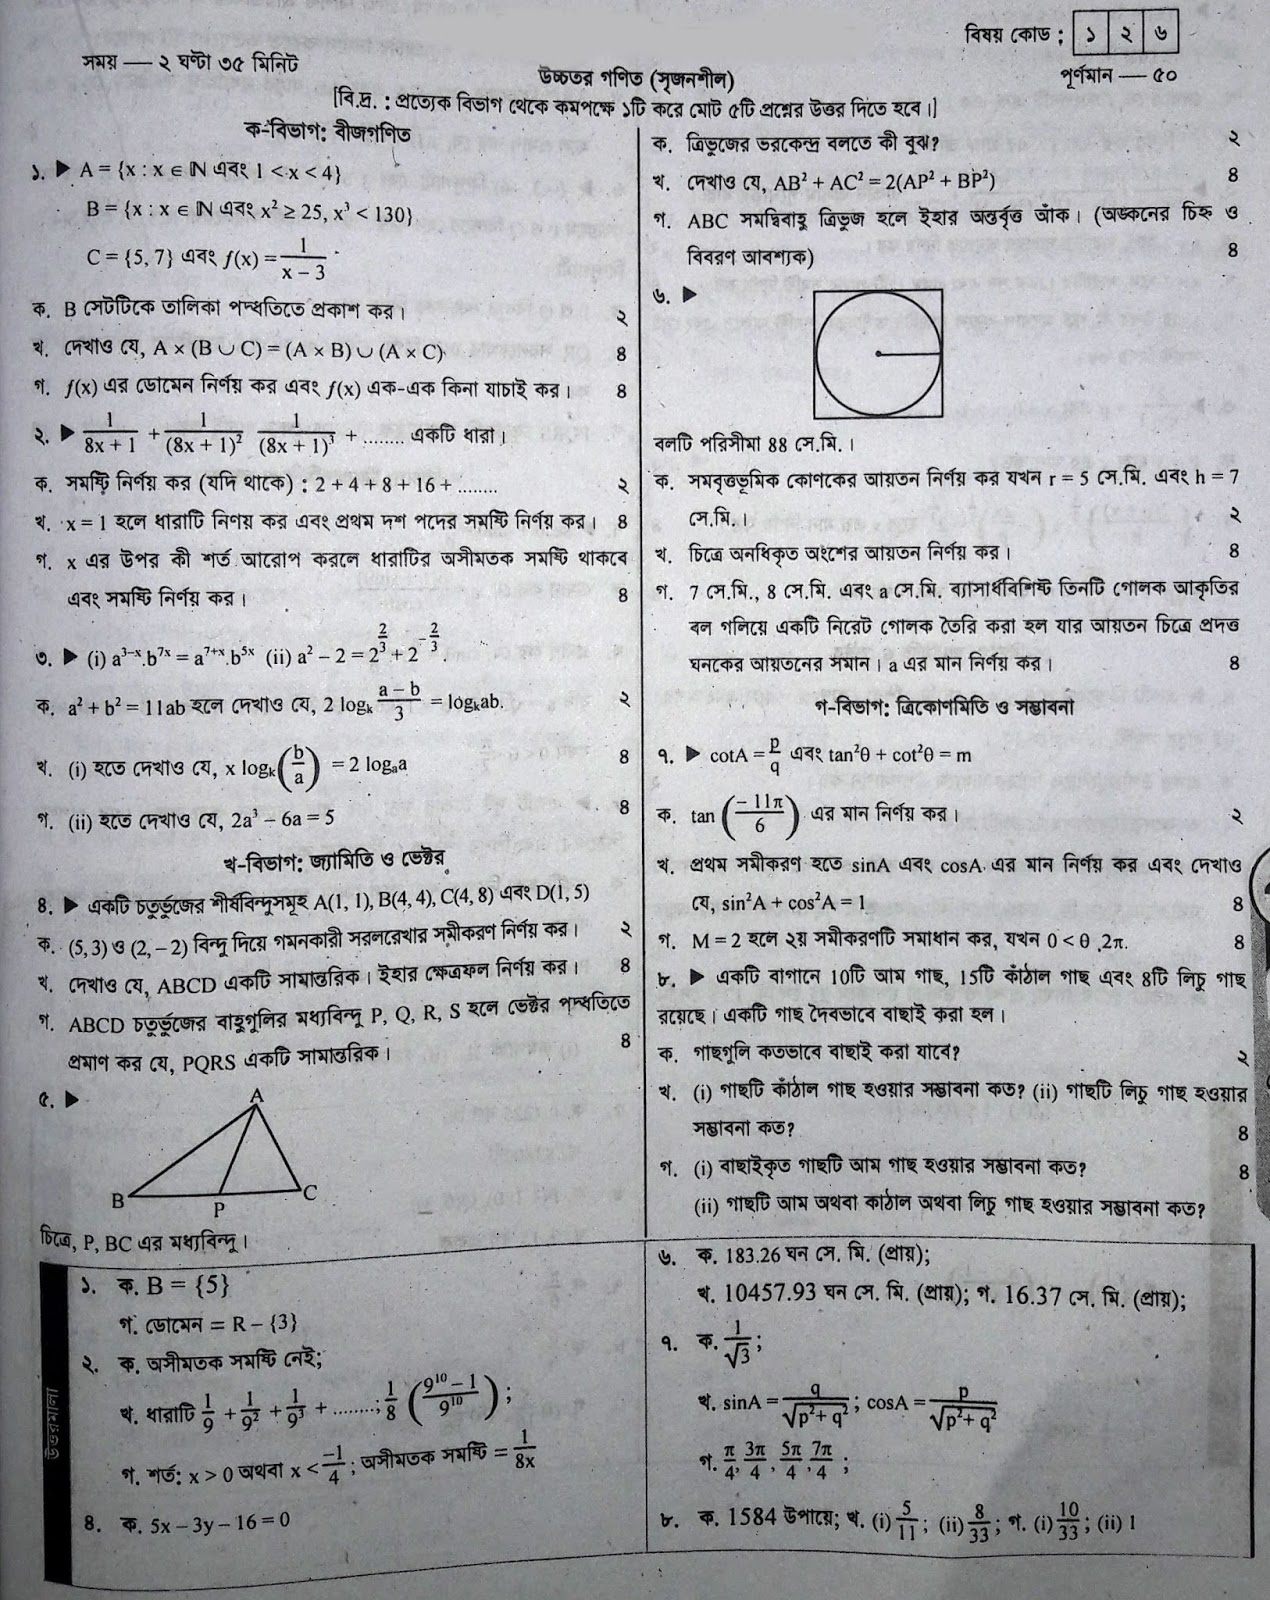 ssc higher math suggestion, exam question paper, model question, mcq question, question pattern, preparation for dhaka board, all boards